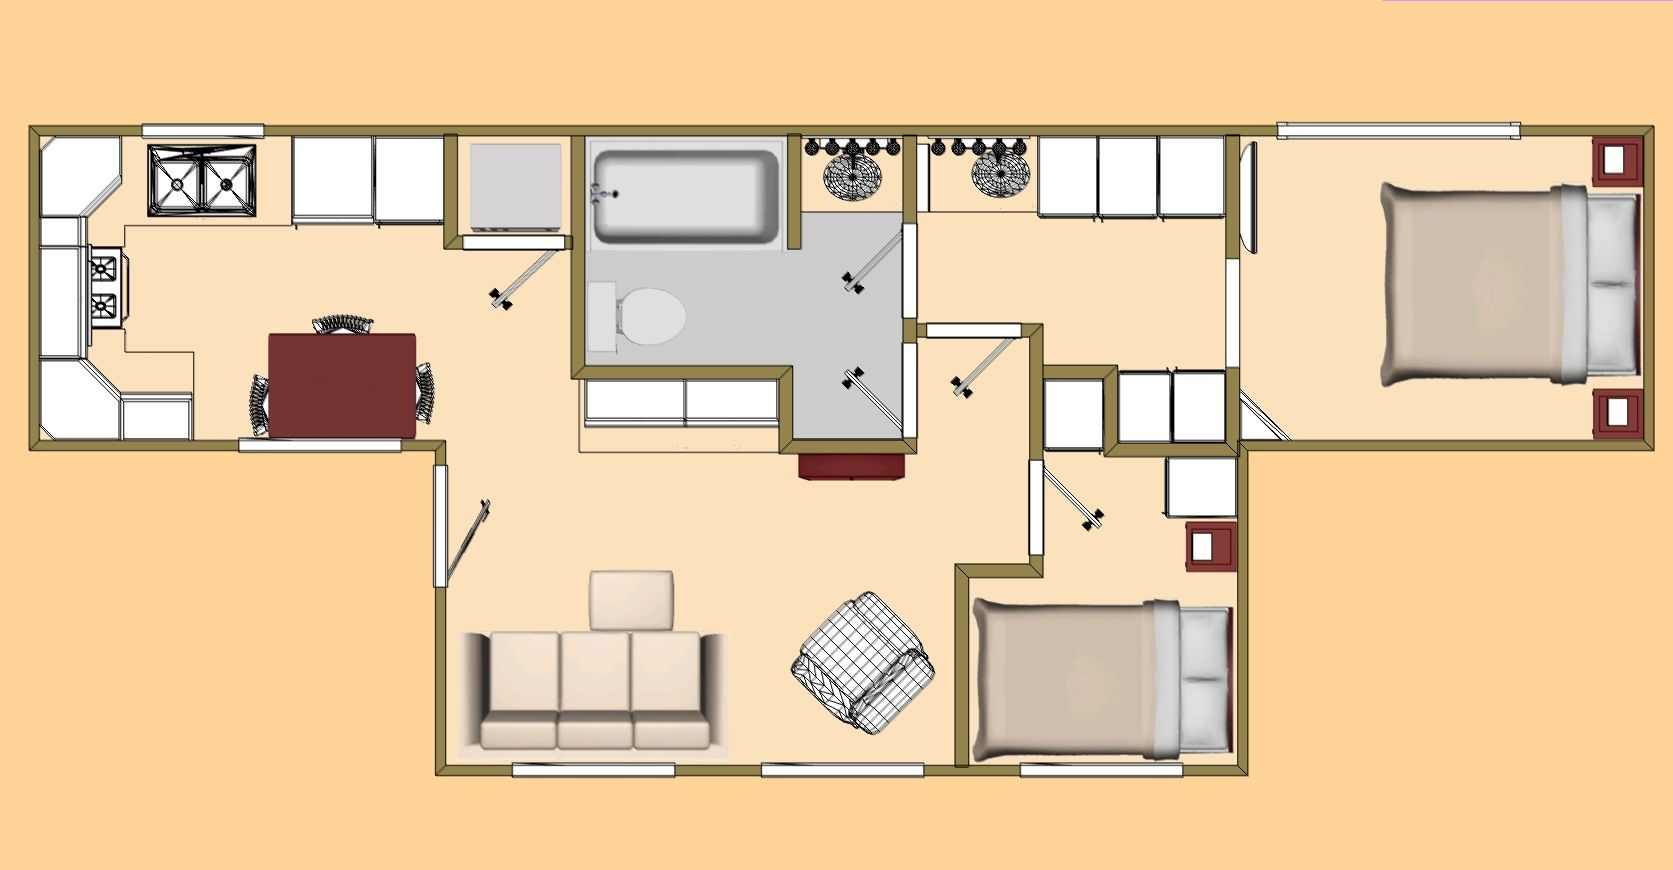 the 480 sq ft big t shipping container floor plan view. | cozy's